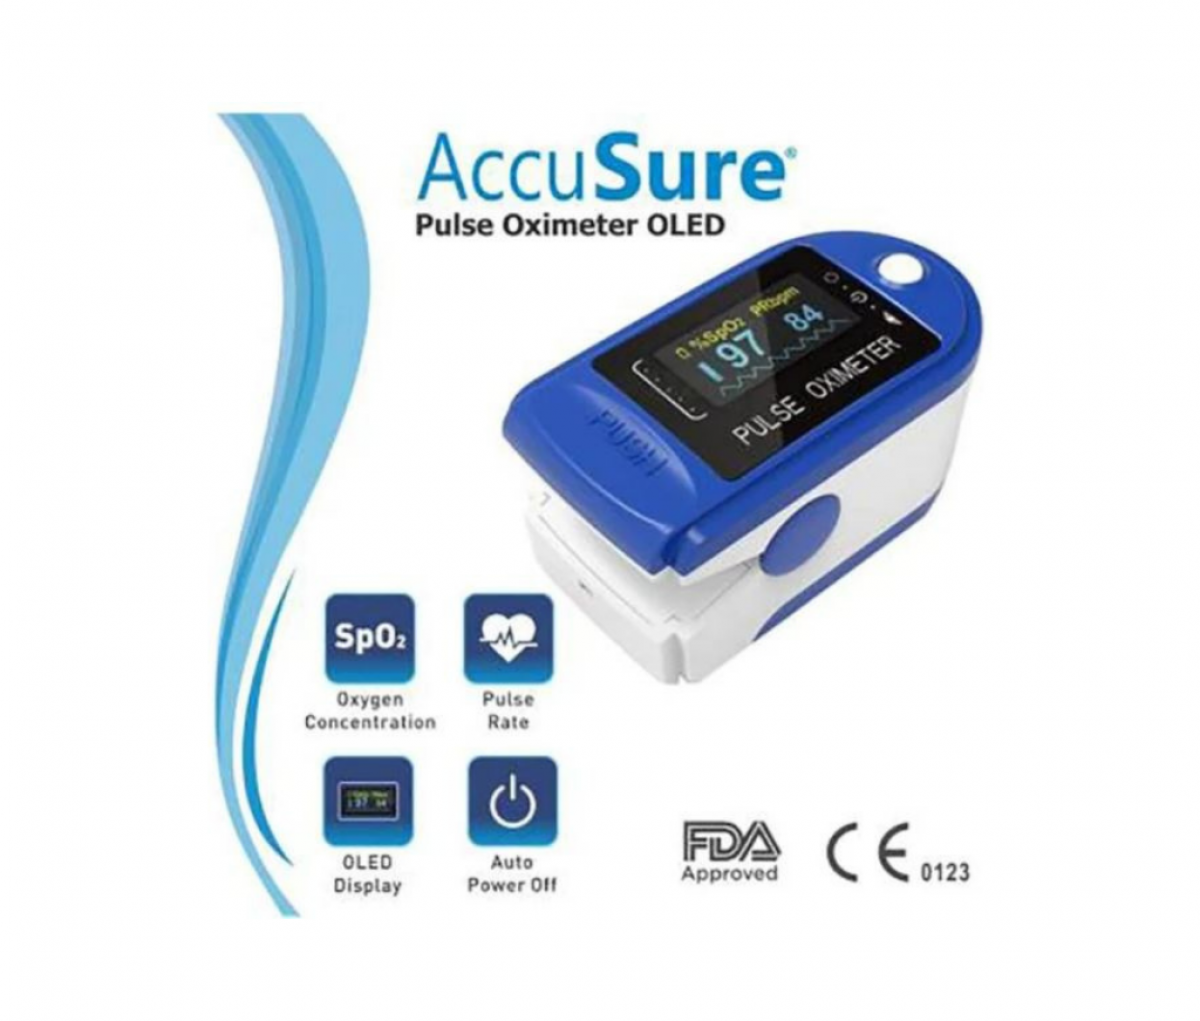 AccuSure CMS50D OLED Pulse Oximeter